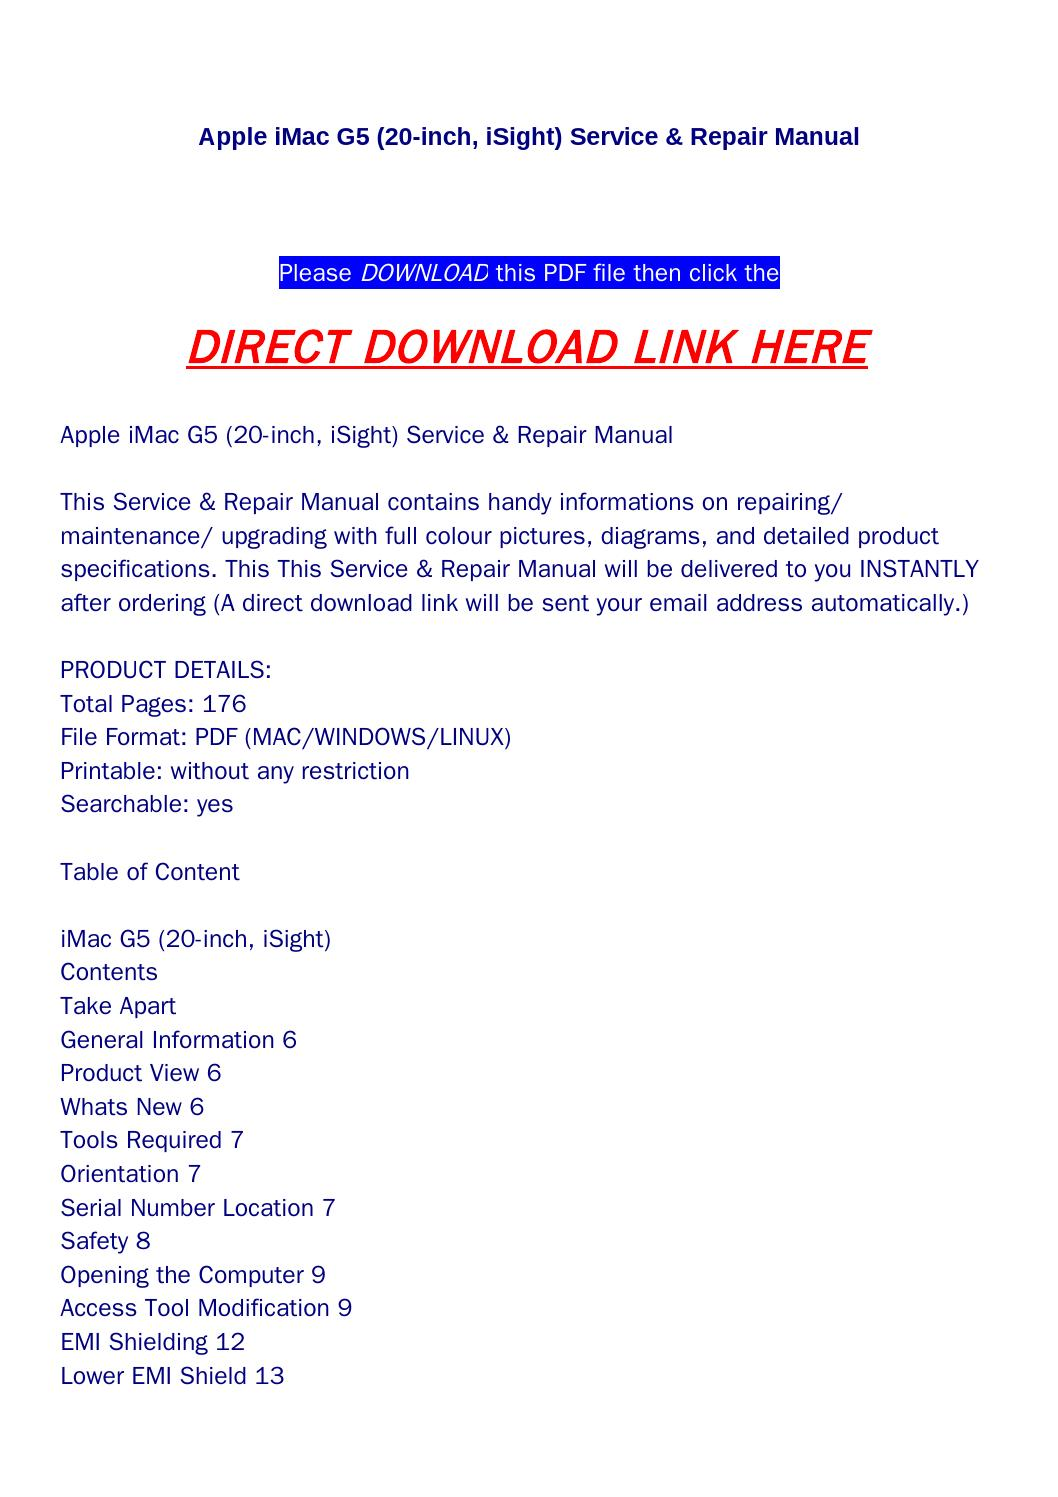 Apple imac g5 (20 inch, isight) service & repair manual by